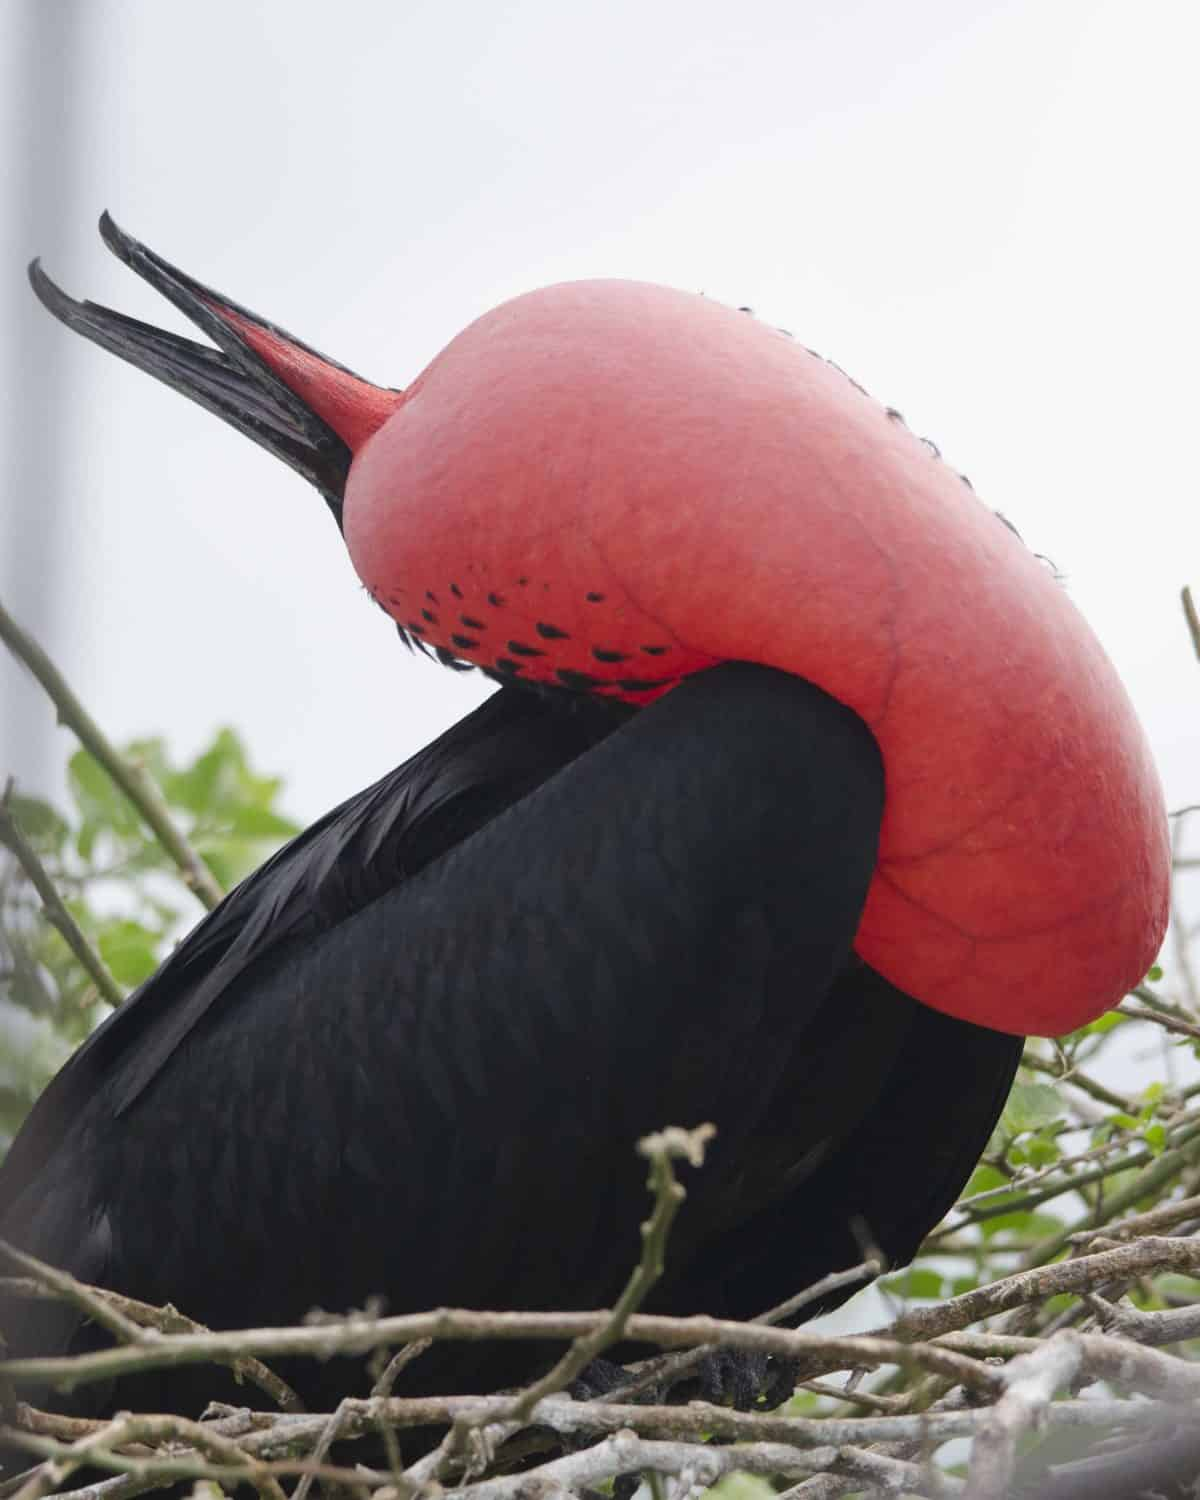 Magnificent Frigatebird, San Cristobal, the Galapagos